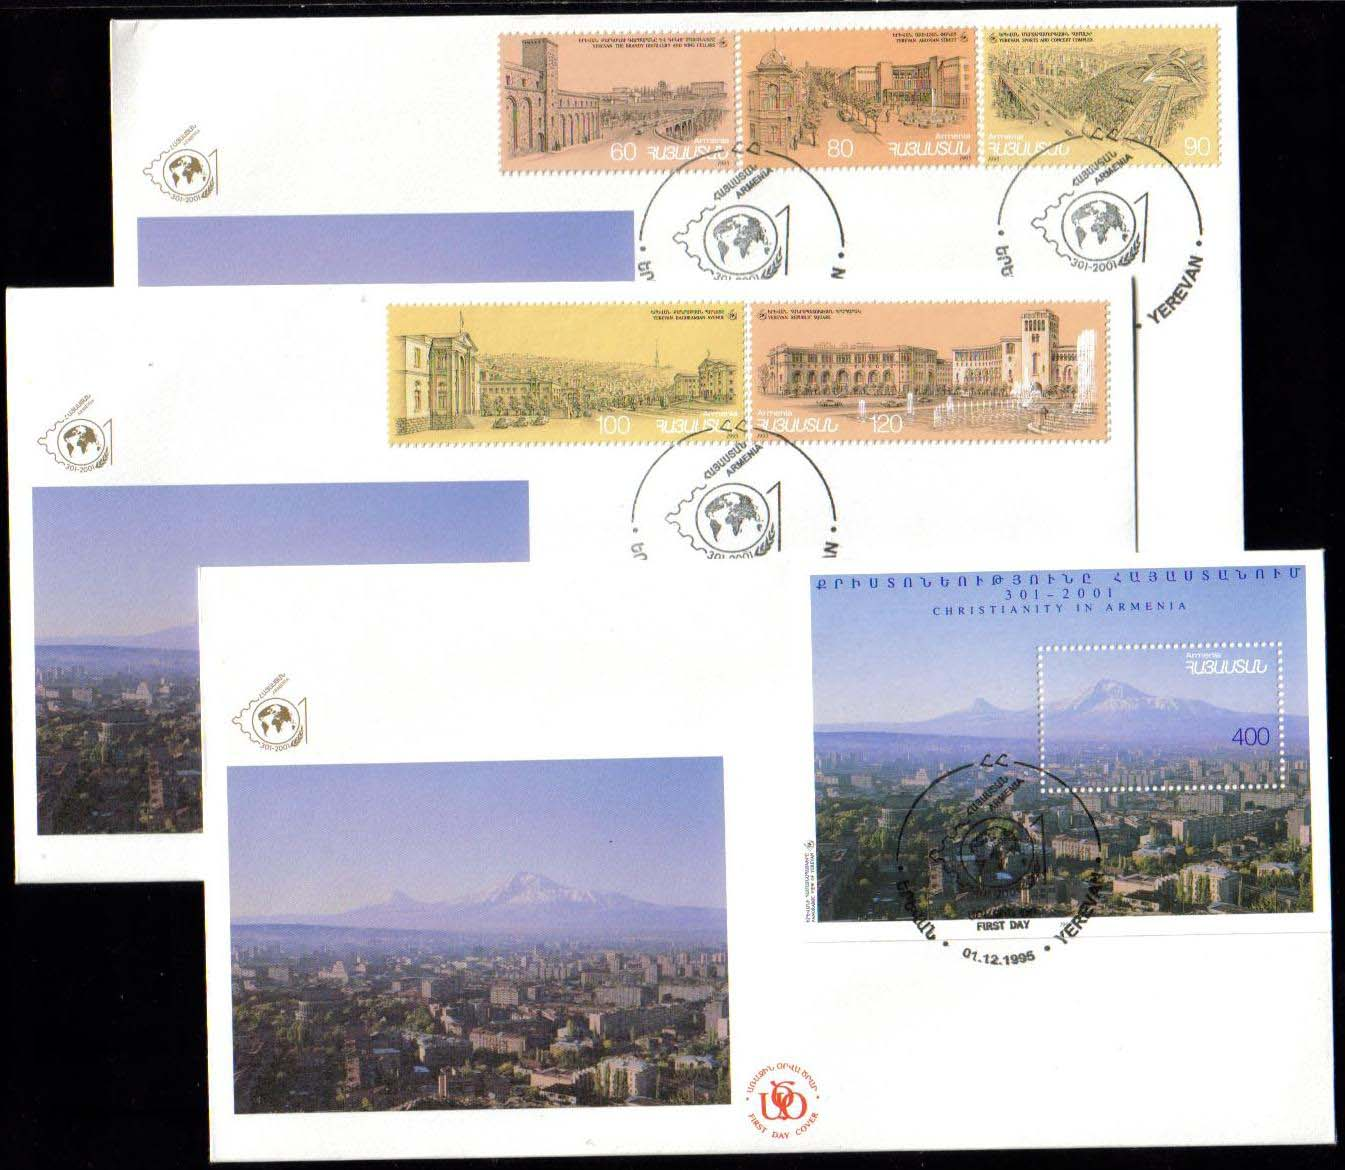 "<Font 2-076g>073-78, FDC, Christianity in Armenia, Complete set of 5 and the S/S on three FDC, signed by Souren Arakelov Vice-President of Armenia 2001.  (50 complete sets were signed on the first day of the exhibition), Scott #515-520. <p> <a href=""/images/ArmenianStamps-073-078-FDC-Set.jpg"">   <font color=green><b>View the image</b></a></font>"